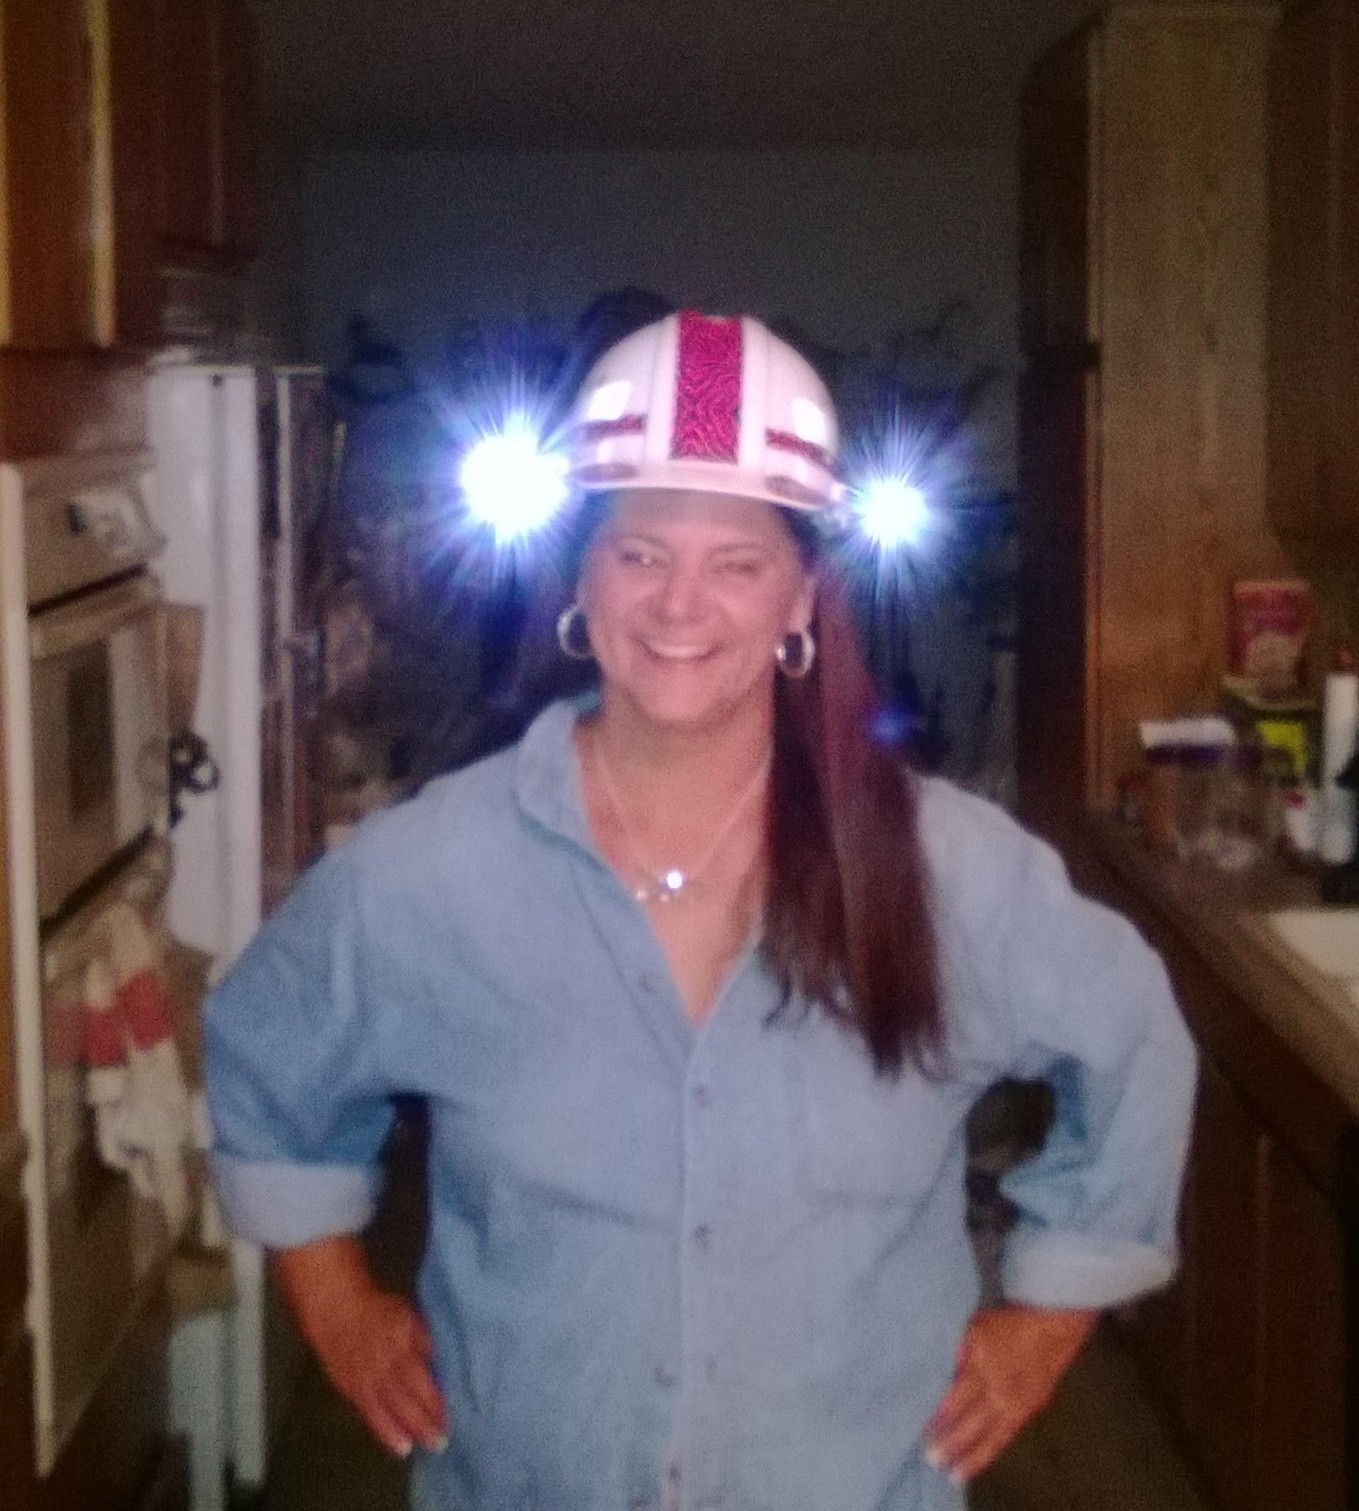 Pet Sitter Head Lamp!